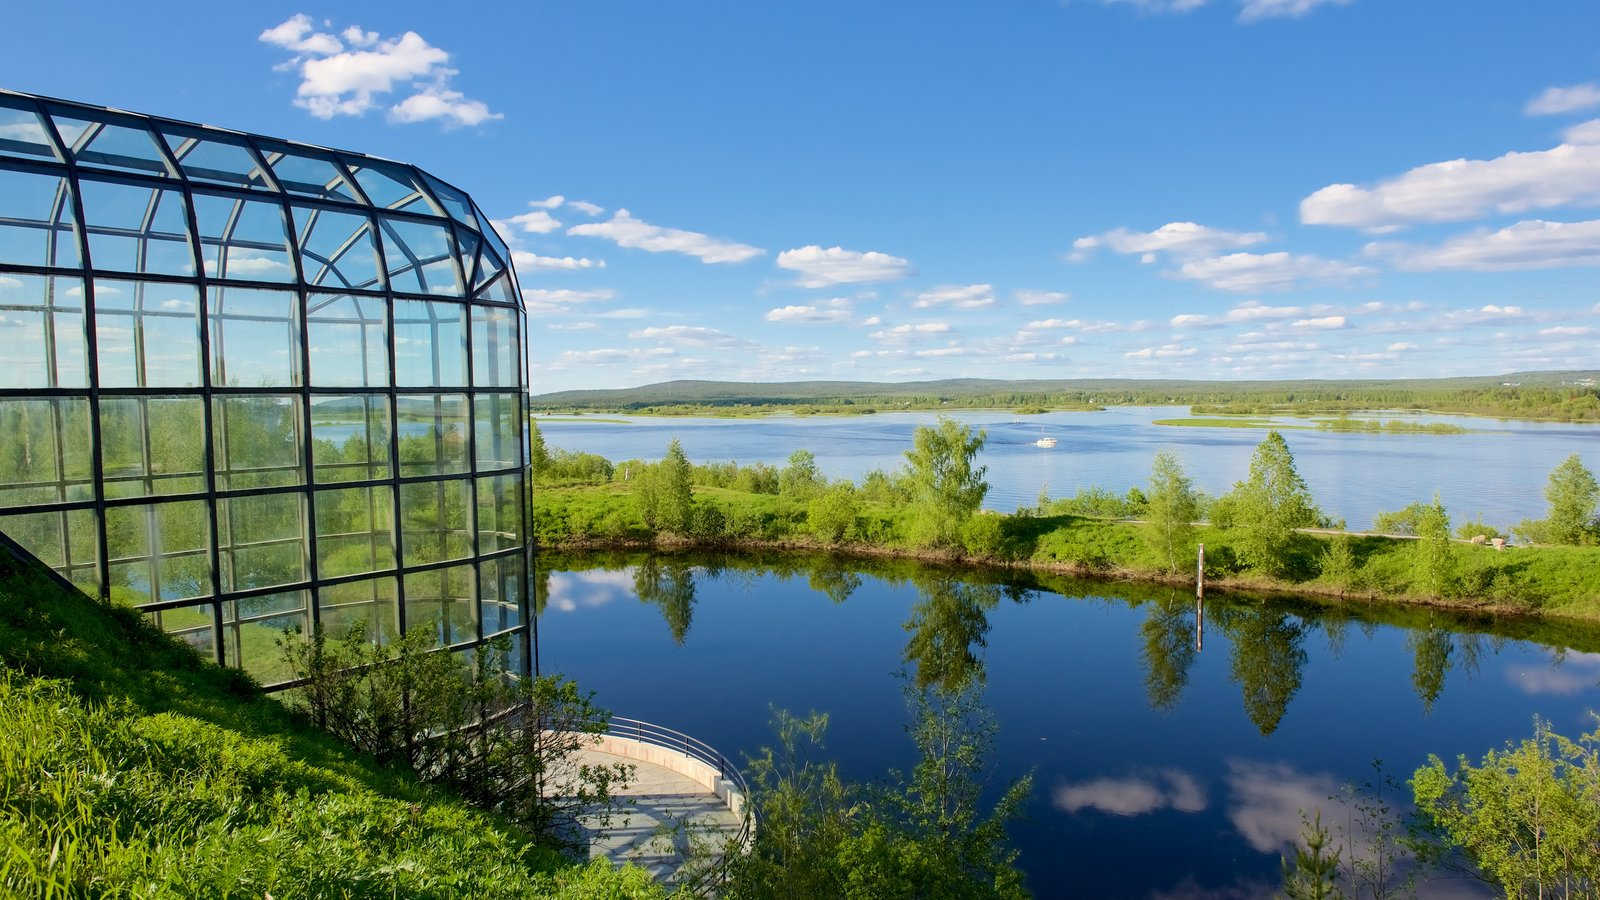 Arktikum showing tranquil scenes, landscape views and a river or creek